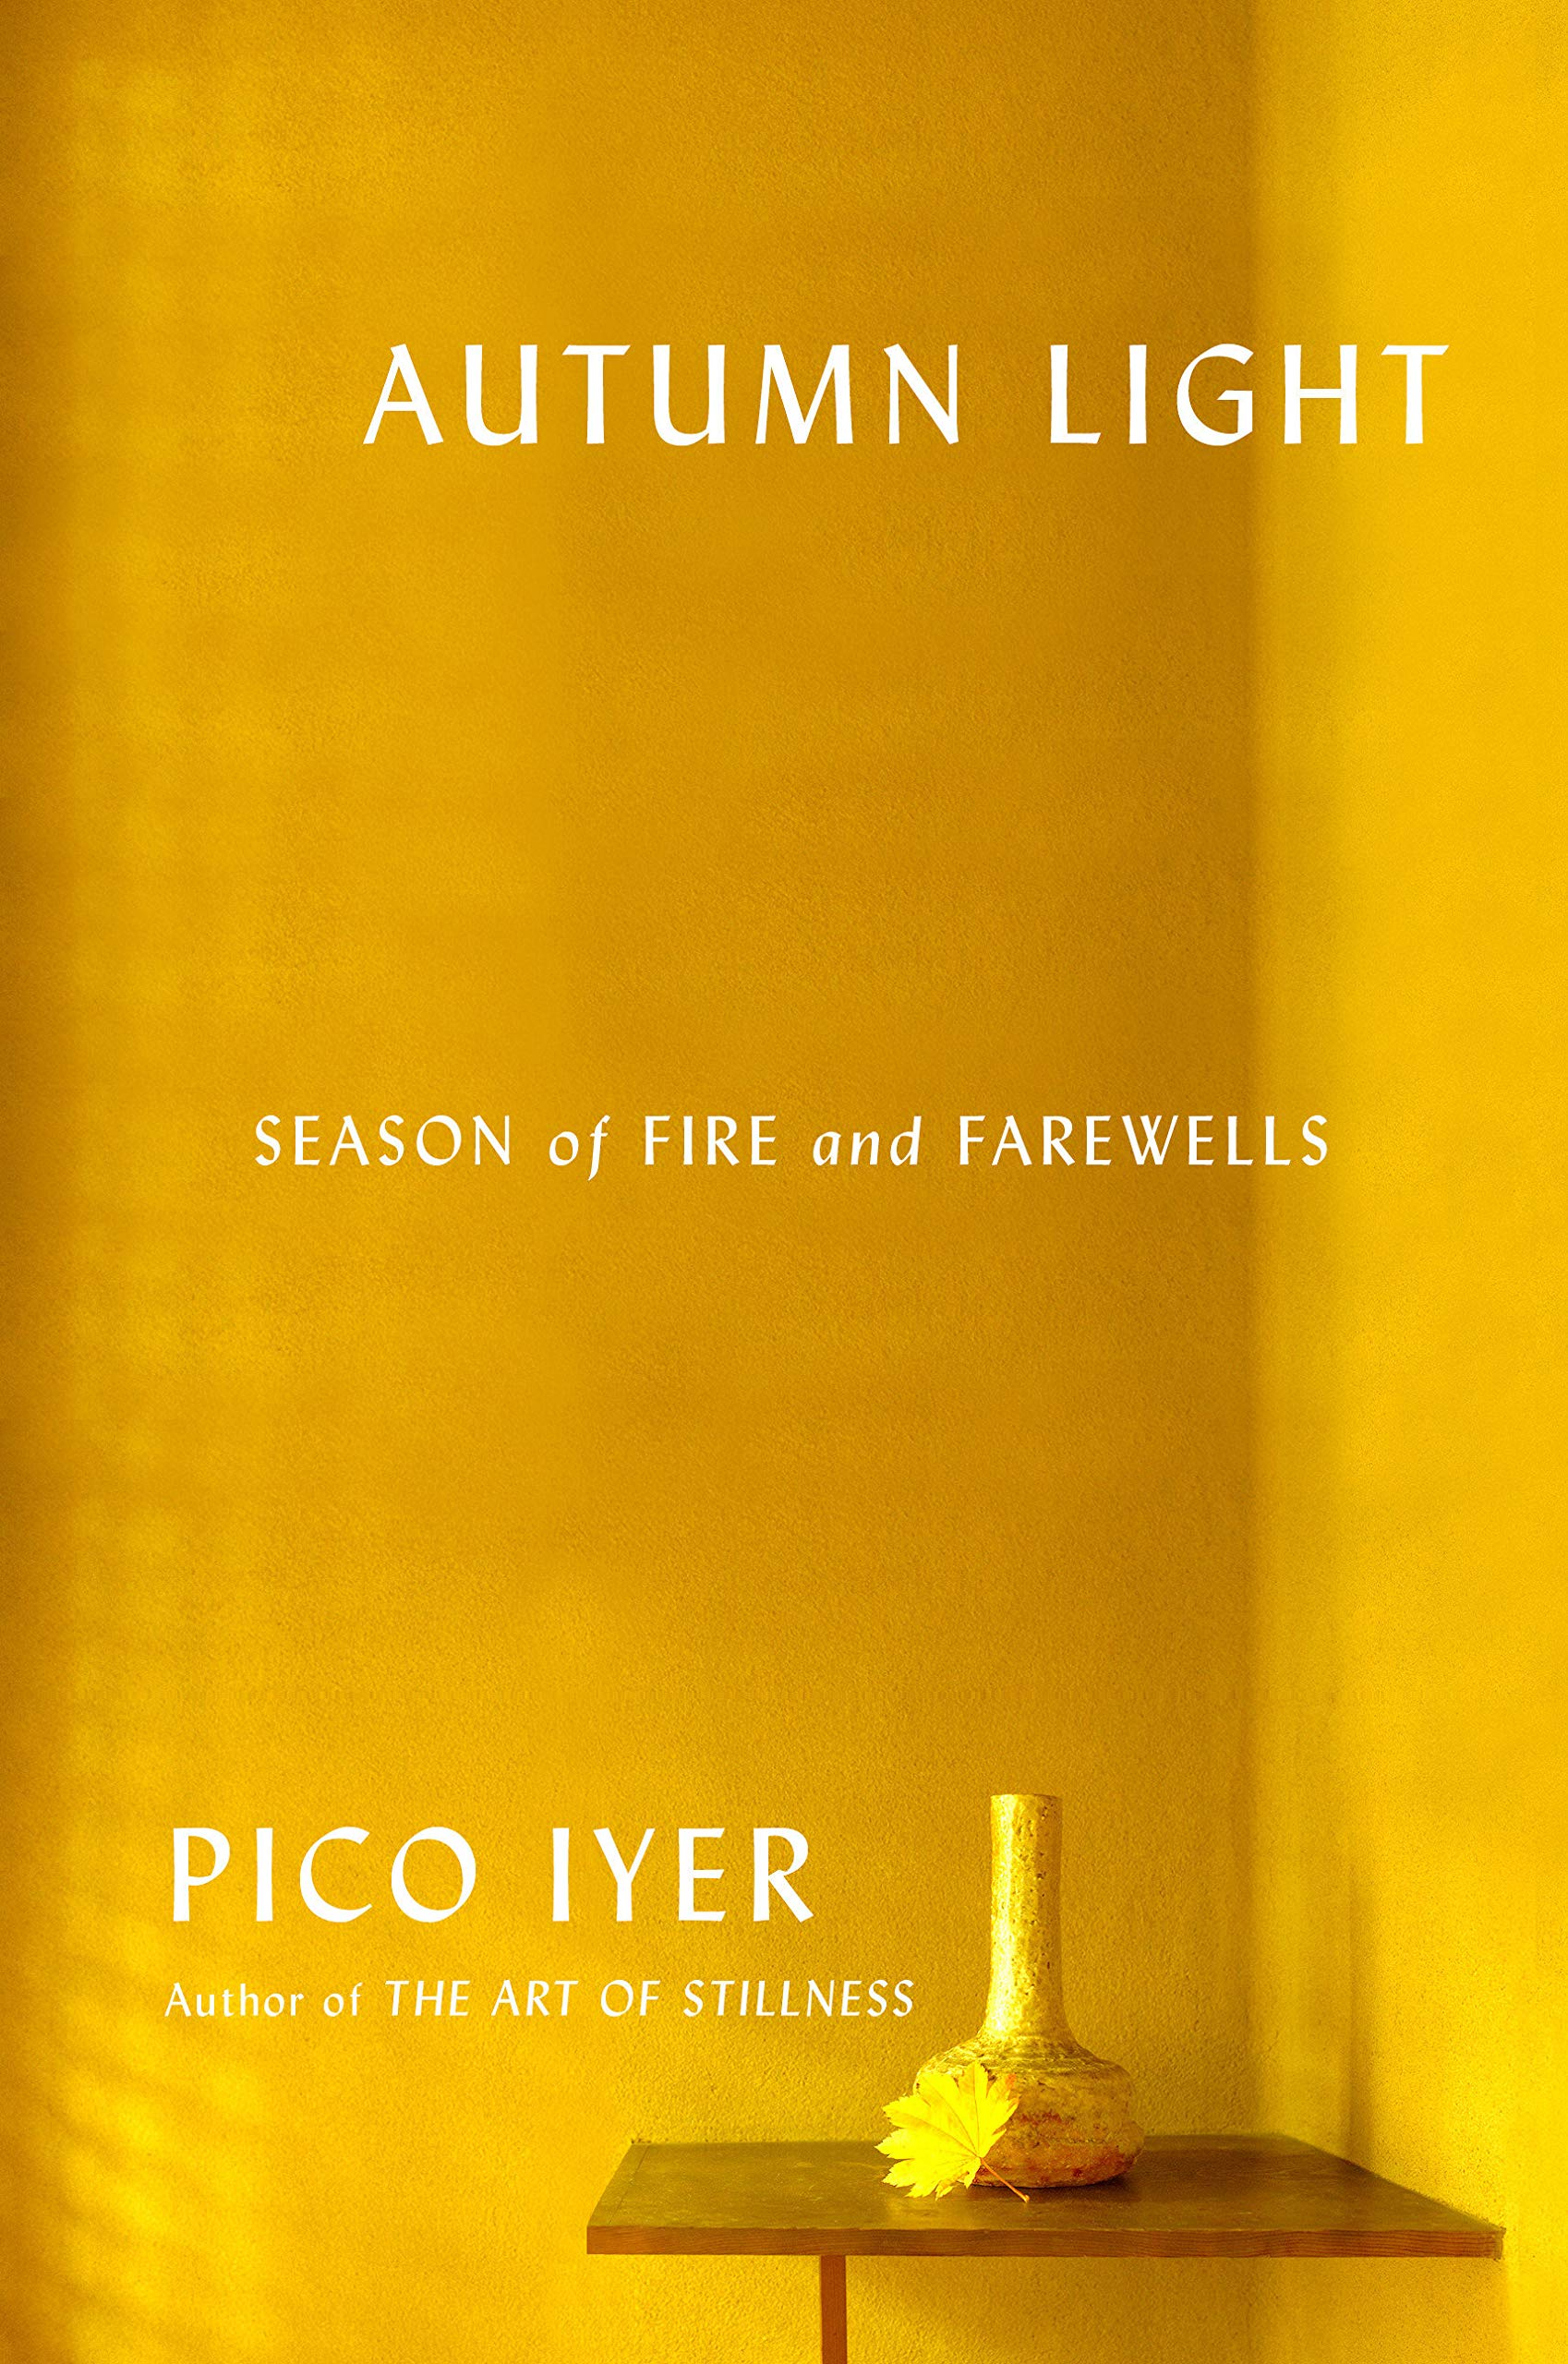 Image result for autumn light book